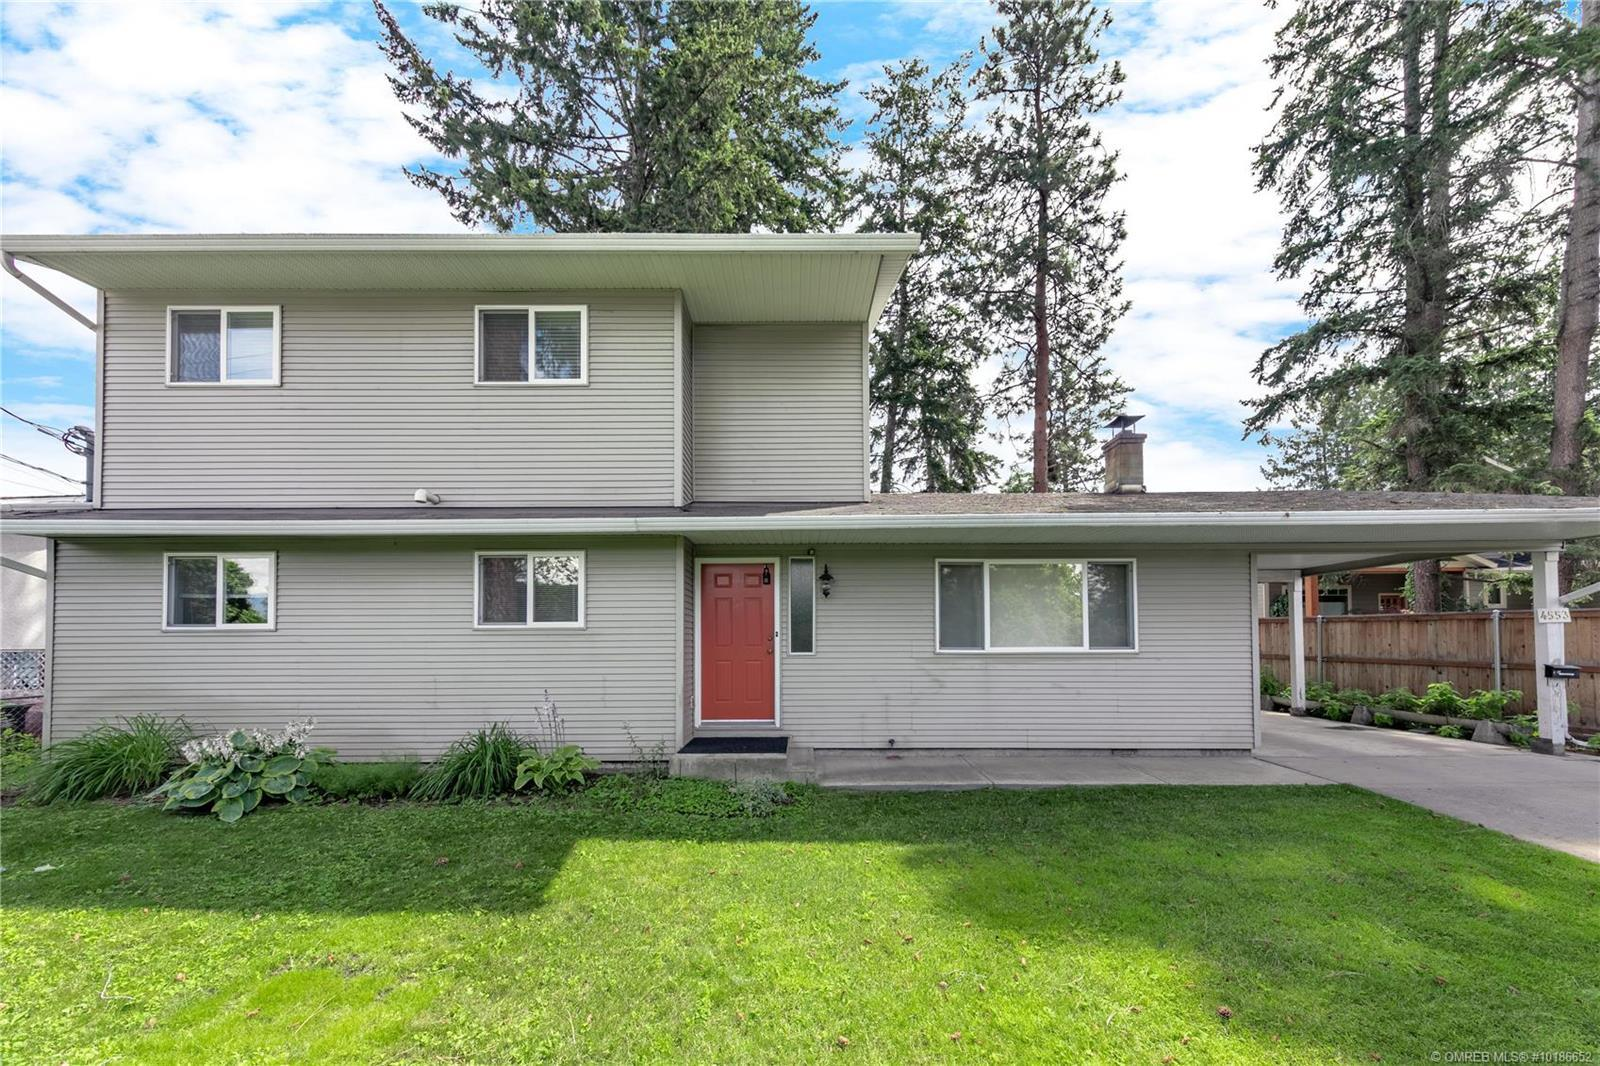 Removed: 4553 Gordon Drive, Kelowna, BC - Removed on 2019-10-25 05:54:13